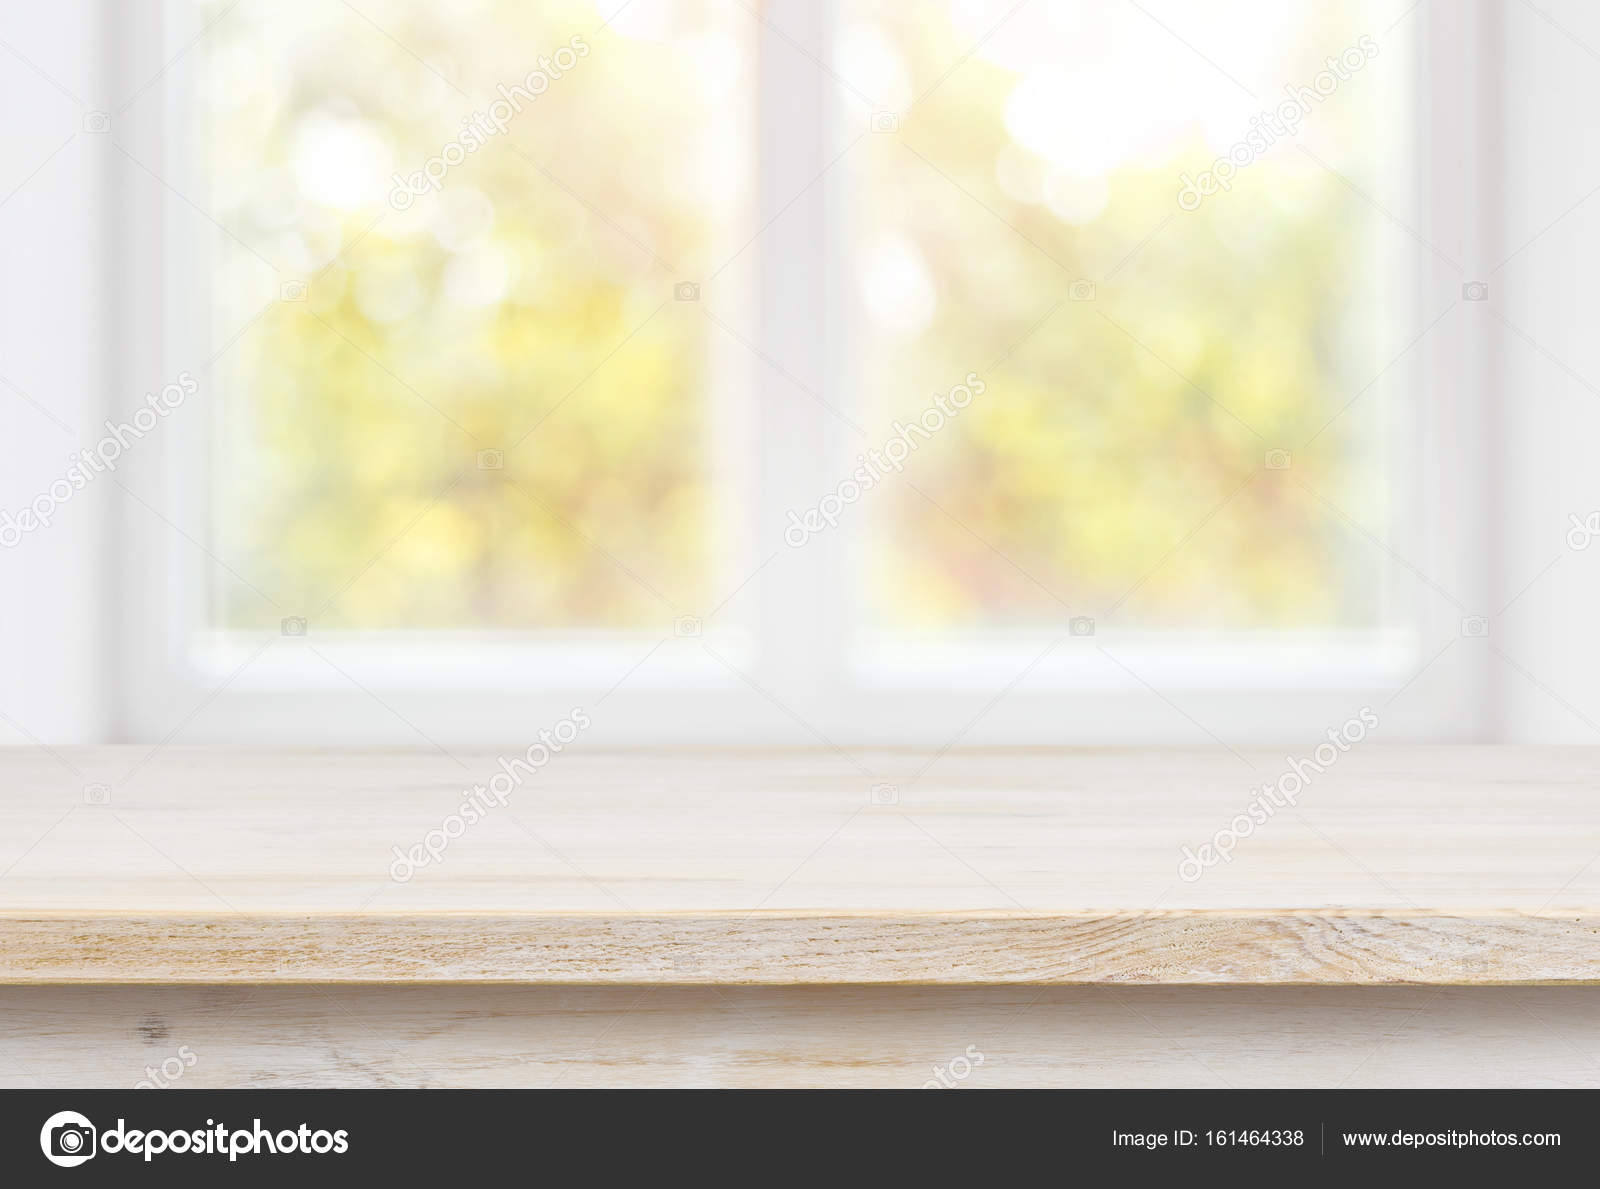 Wooden Table Top On Blurred Glass Window Wall Building Background U2014 Stock  Photo